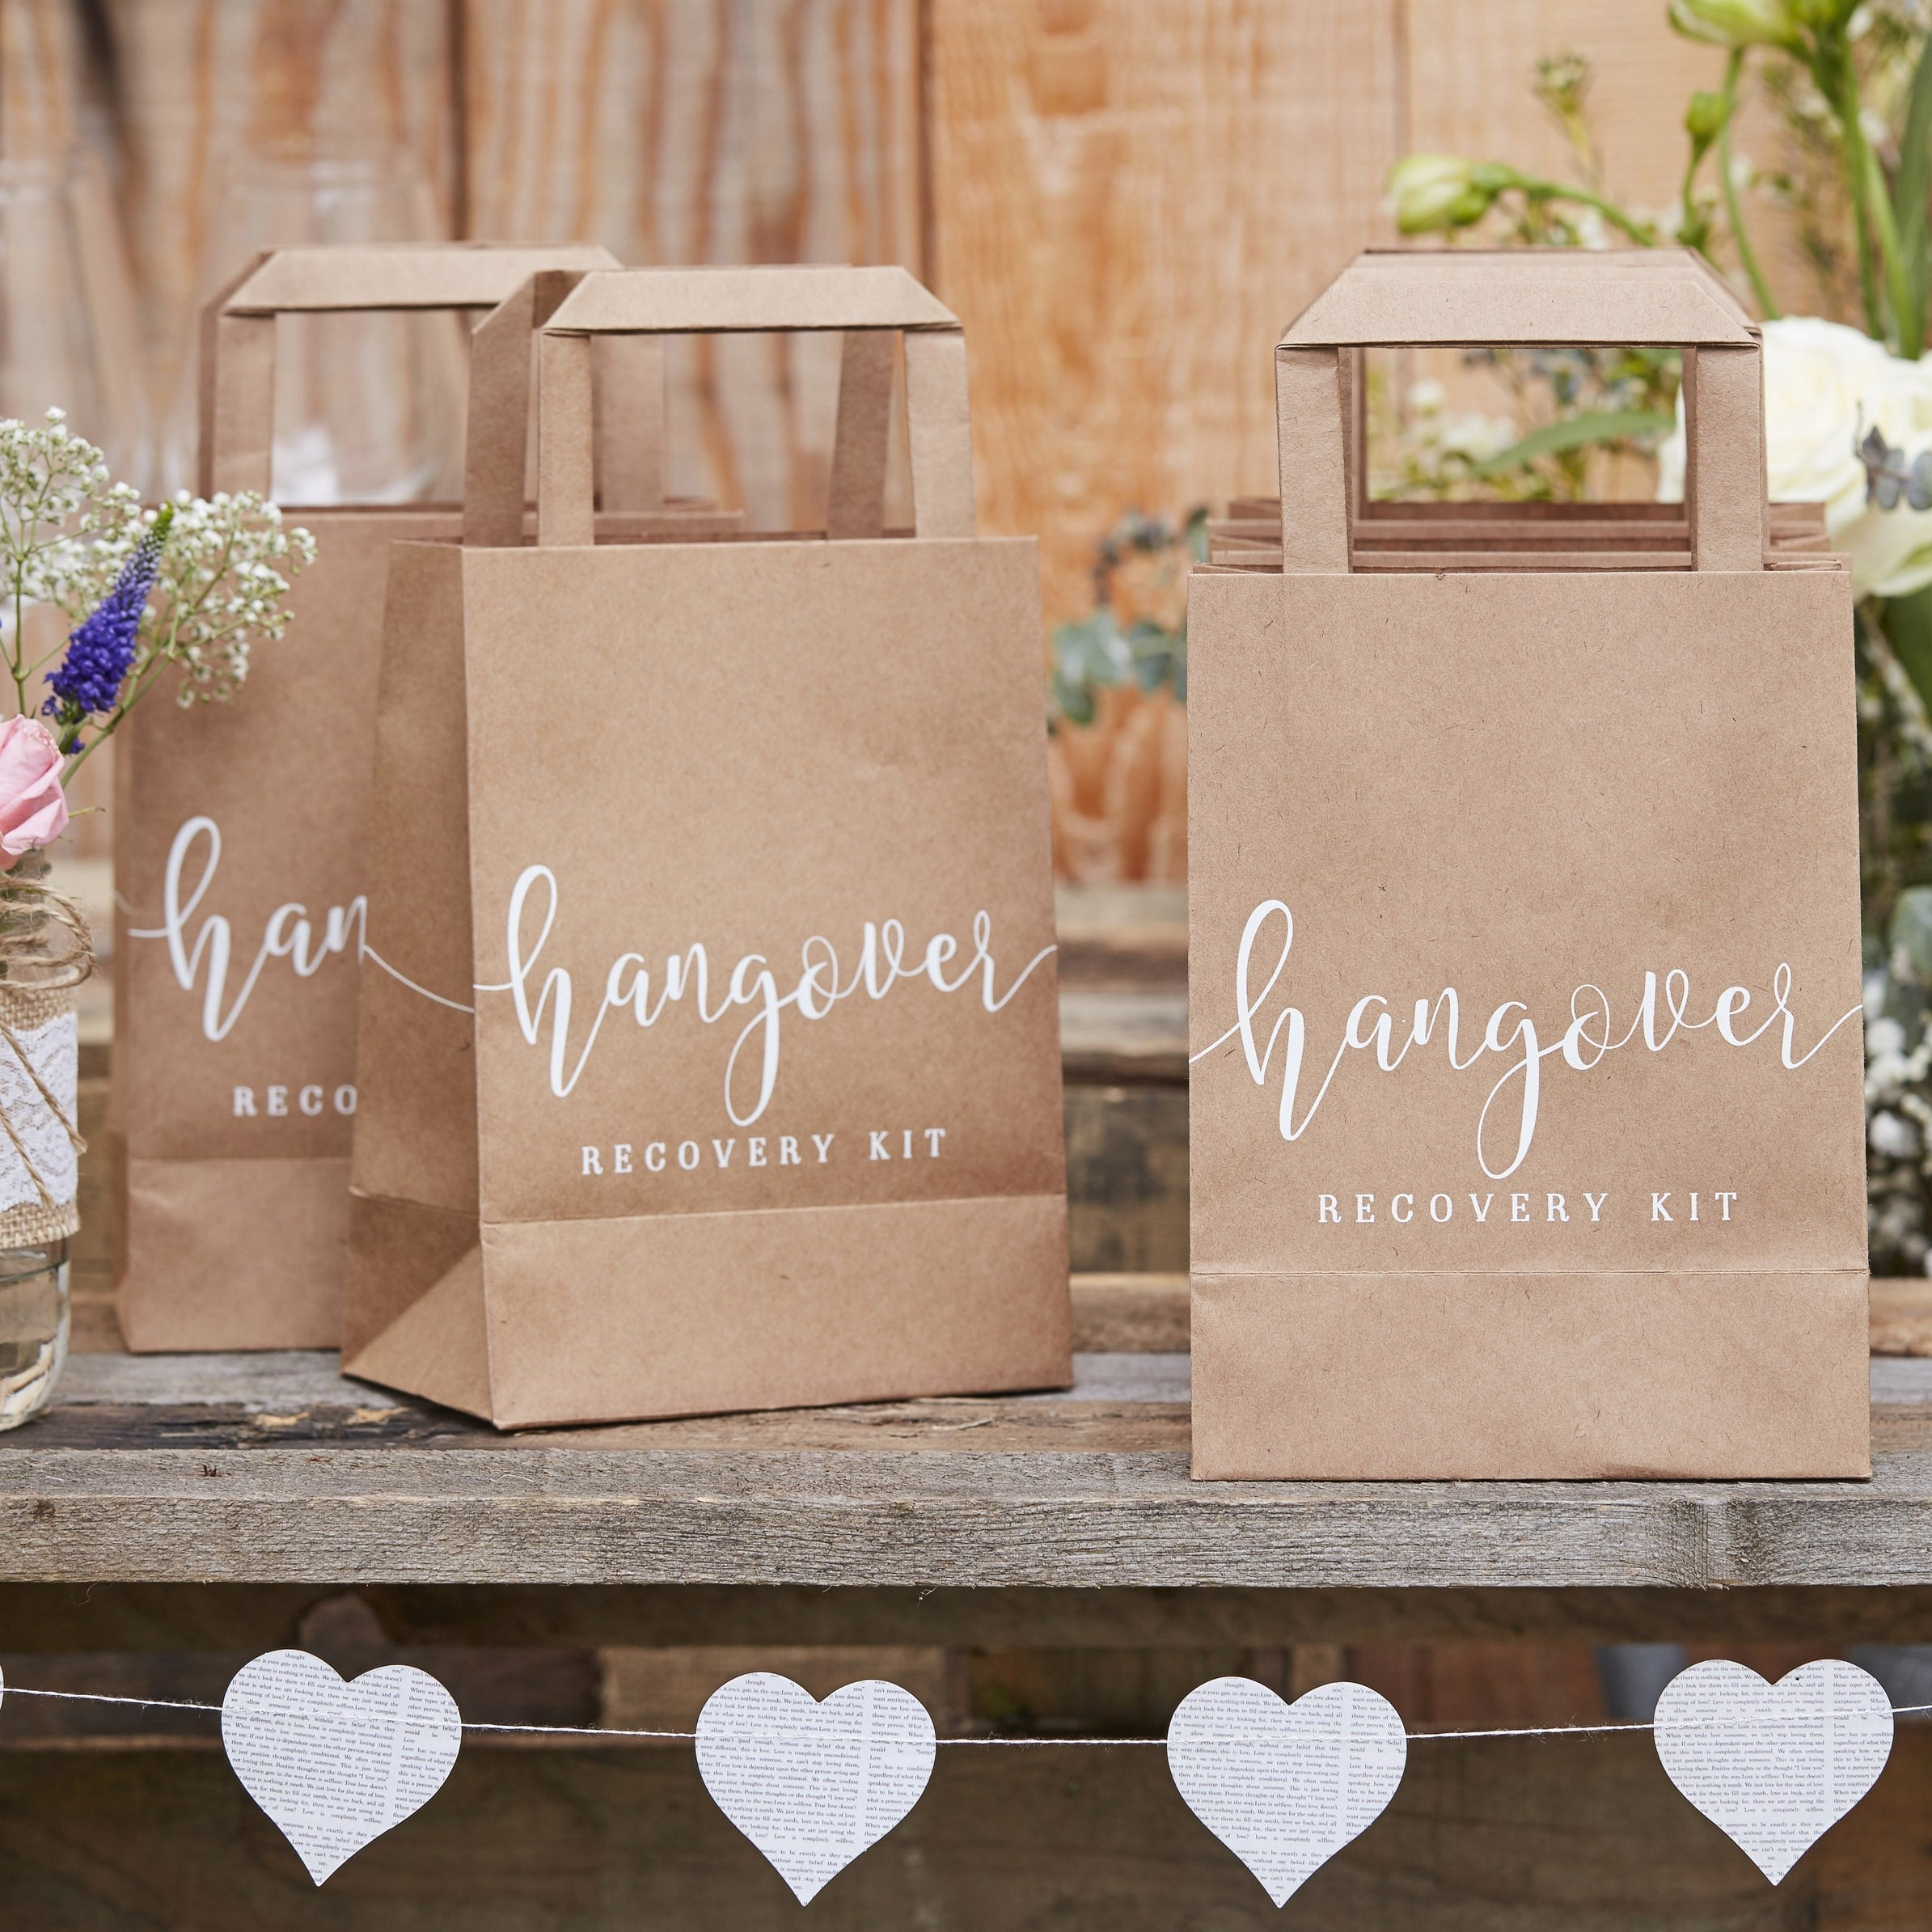 Hangover kit brown paper bags 5 pack the wedding of my dreams hangover kit wedding favour bags available from the wedding of my dreams solutioingenieria Choice Image